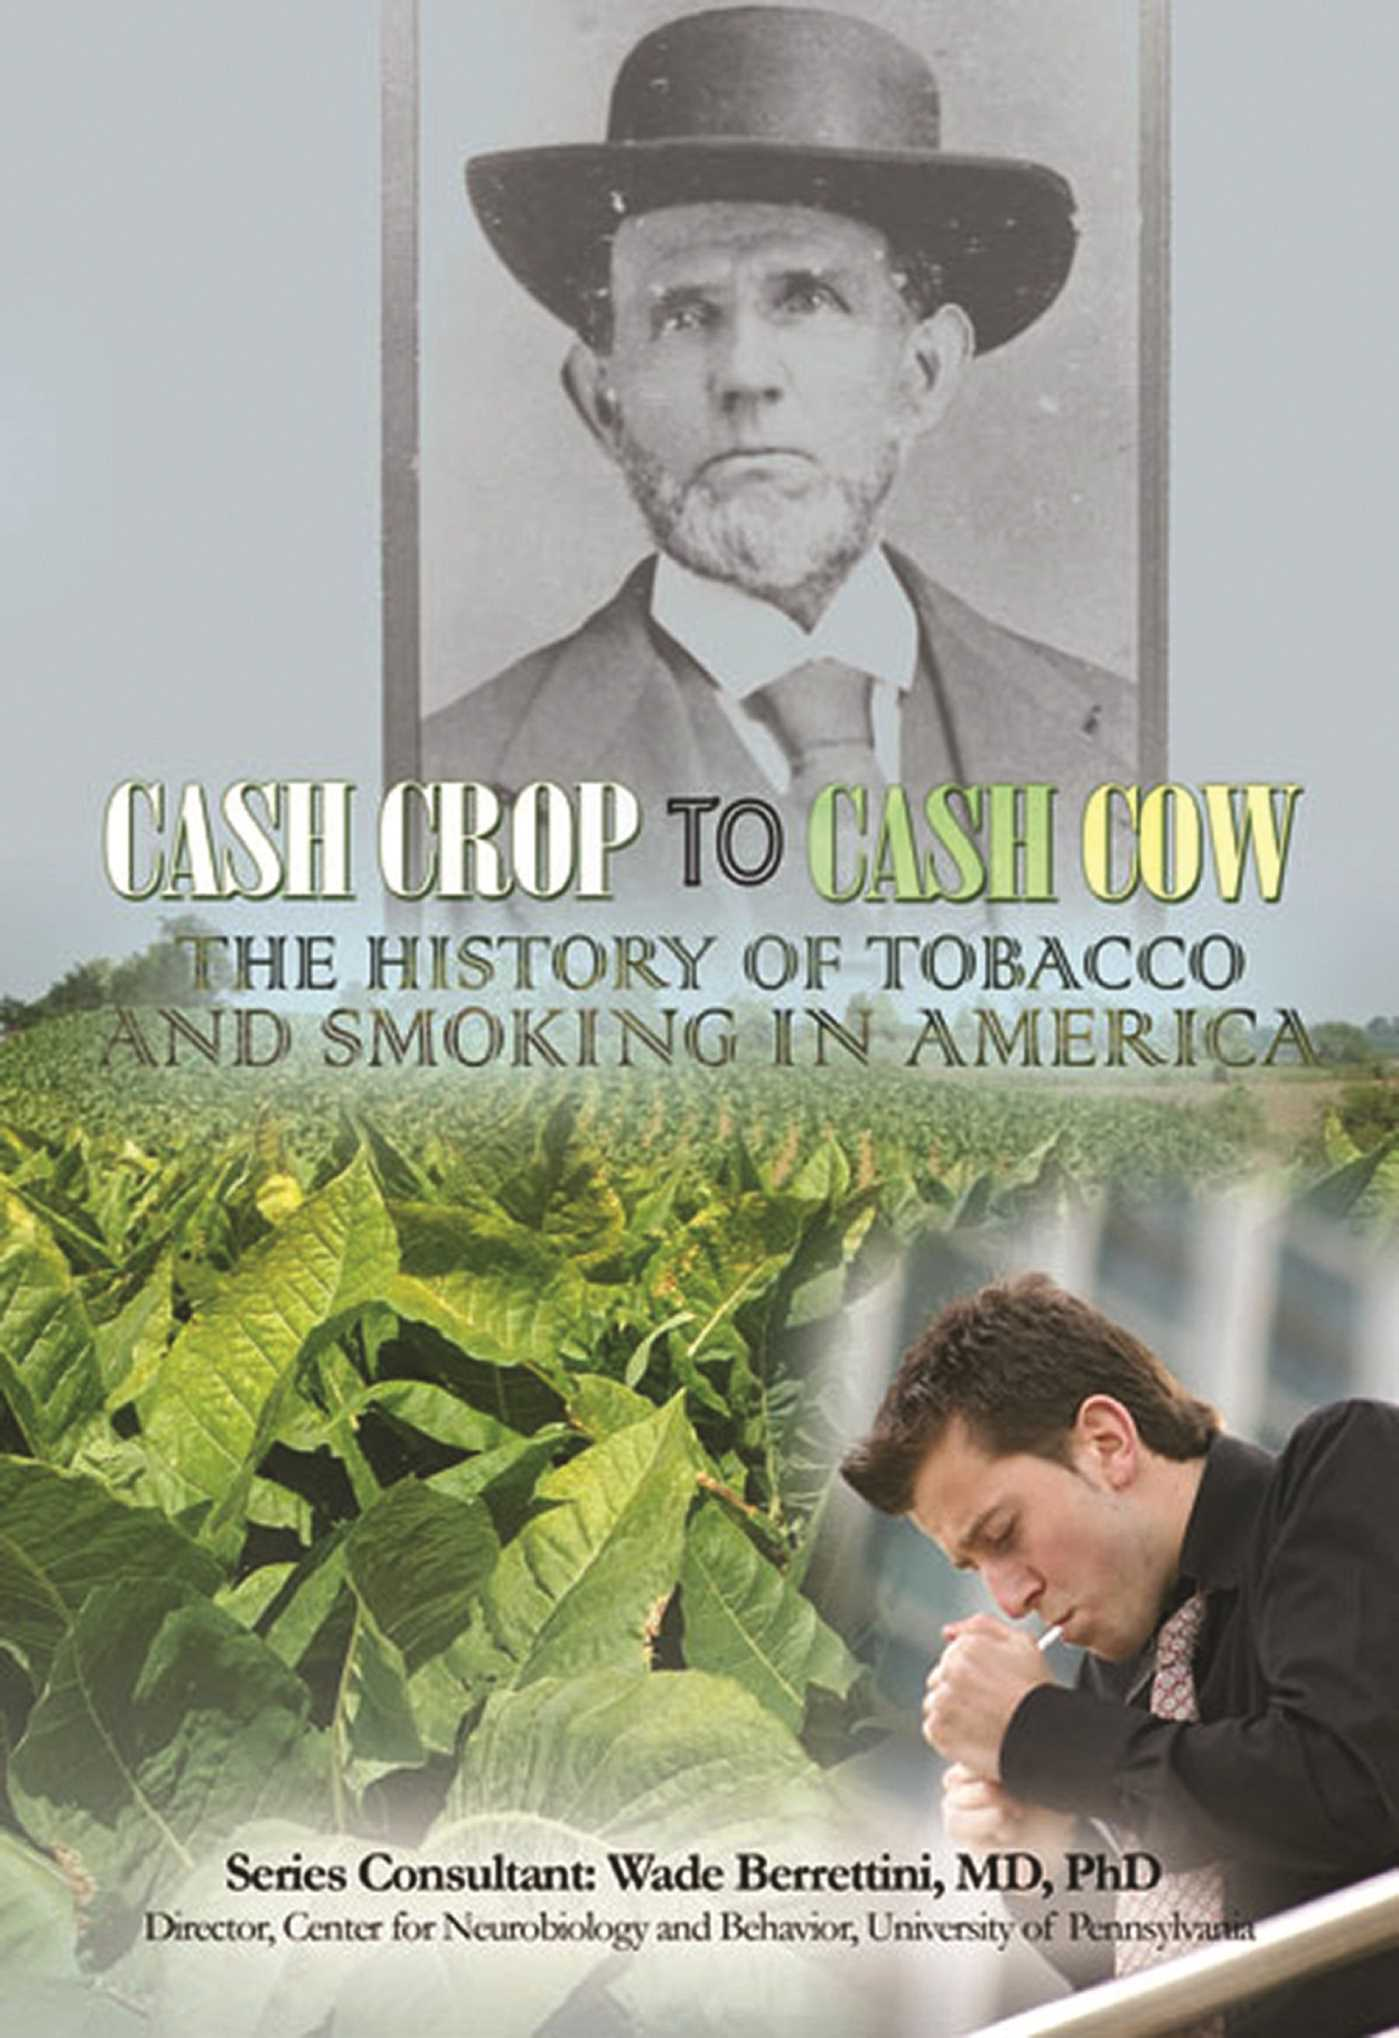 the history of smoking in america essay By the 1700s smoking had become more widespread and a tobacco industry had developed industry when was tobacco first considered to be dangerous to health in 1602 an anonymous english author published an essay titled worke of chimney sweepers (sic) which stated that illnesses often seen in chimney sweepers were caused by soot and that tobacco may have similar effects.